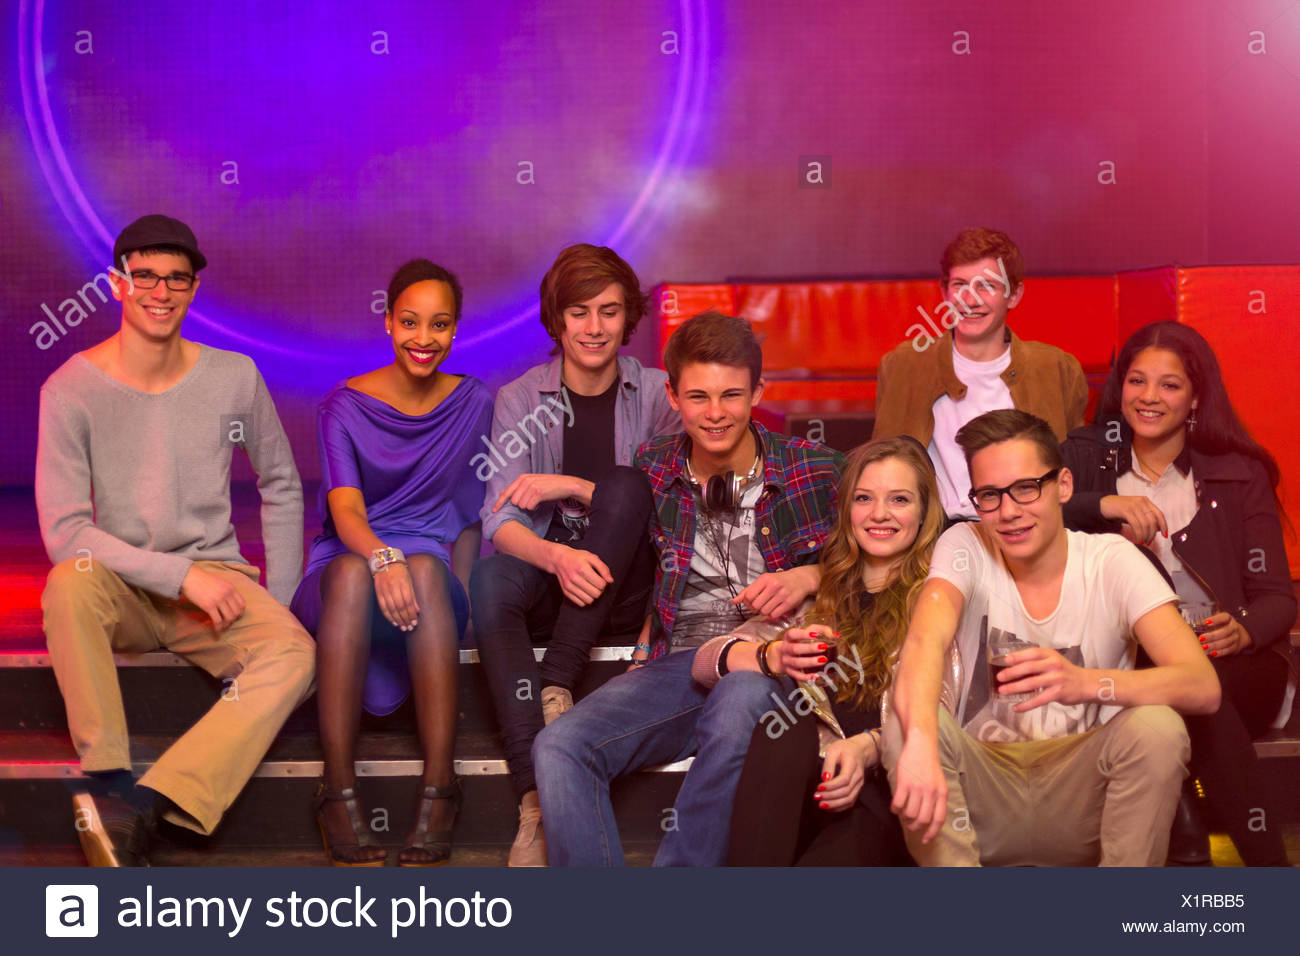 Group of teenagers and young adults sitting on step at party holding drinks - Stock Image